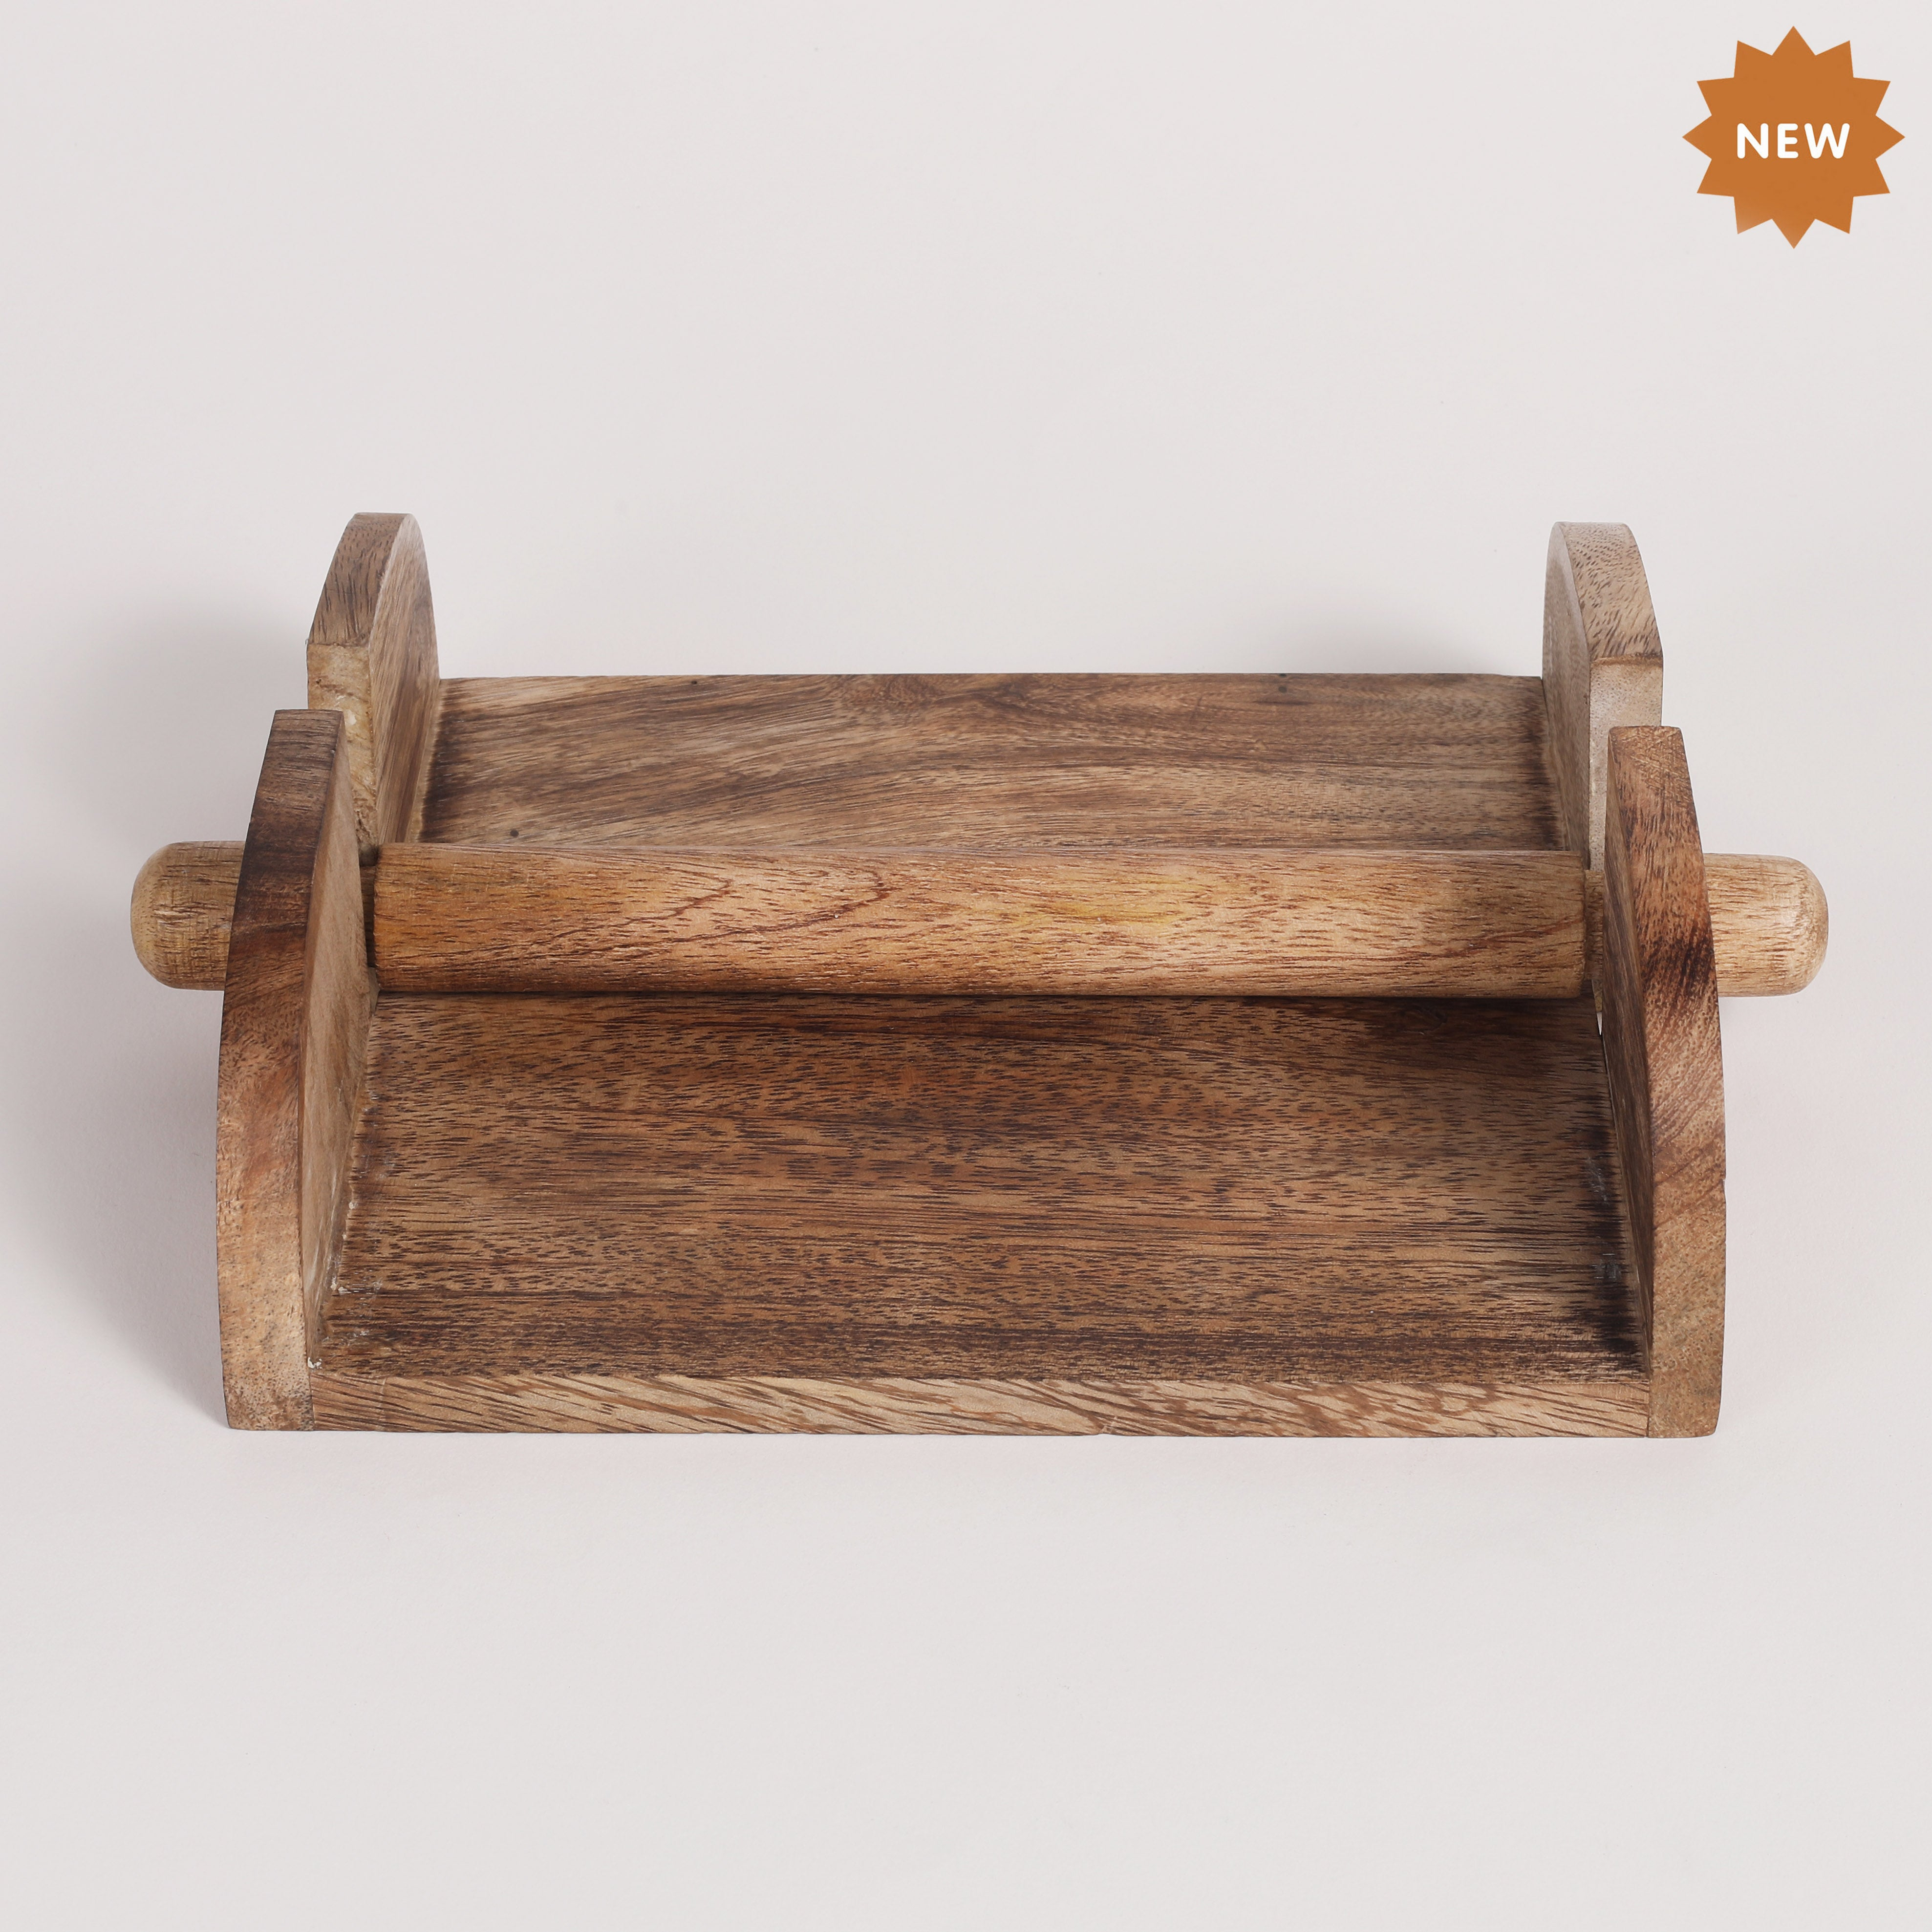 Rusticity Wood Paper Napkin Holder For Napkin And Tissues Mango Wood Rusticity